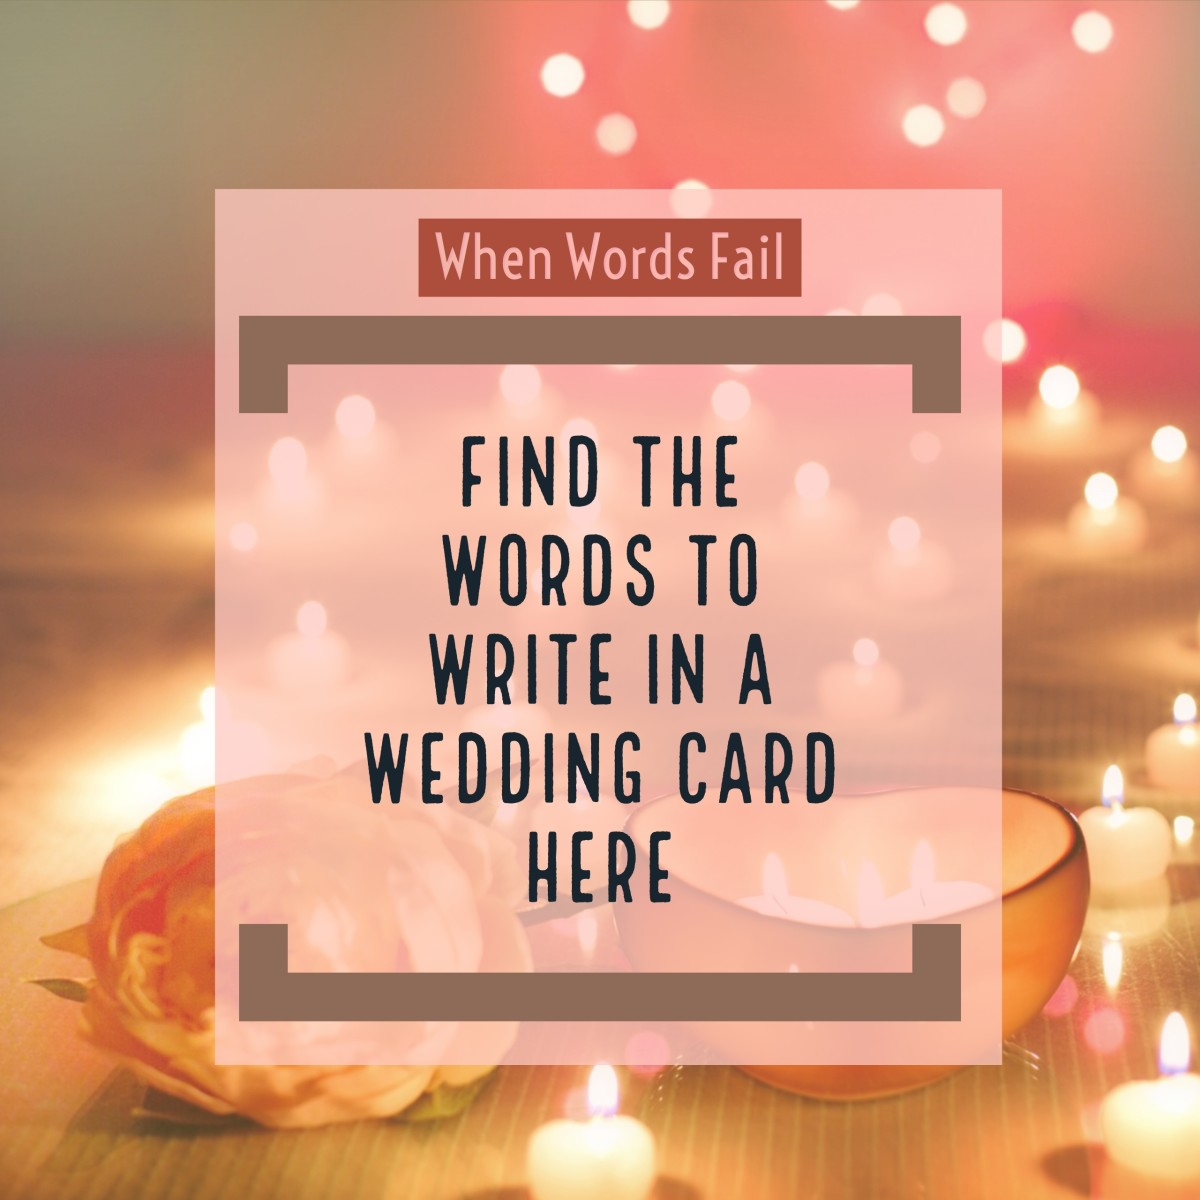 When words fail, find the words to write in a wedding card here.